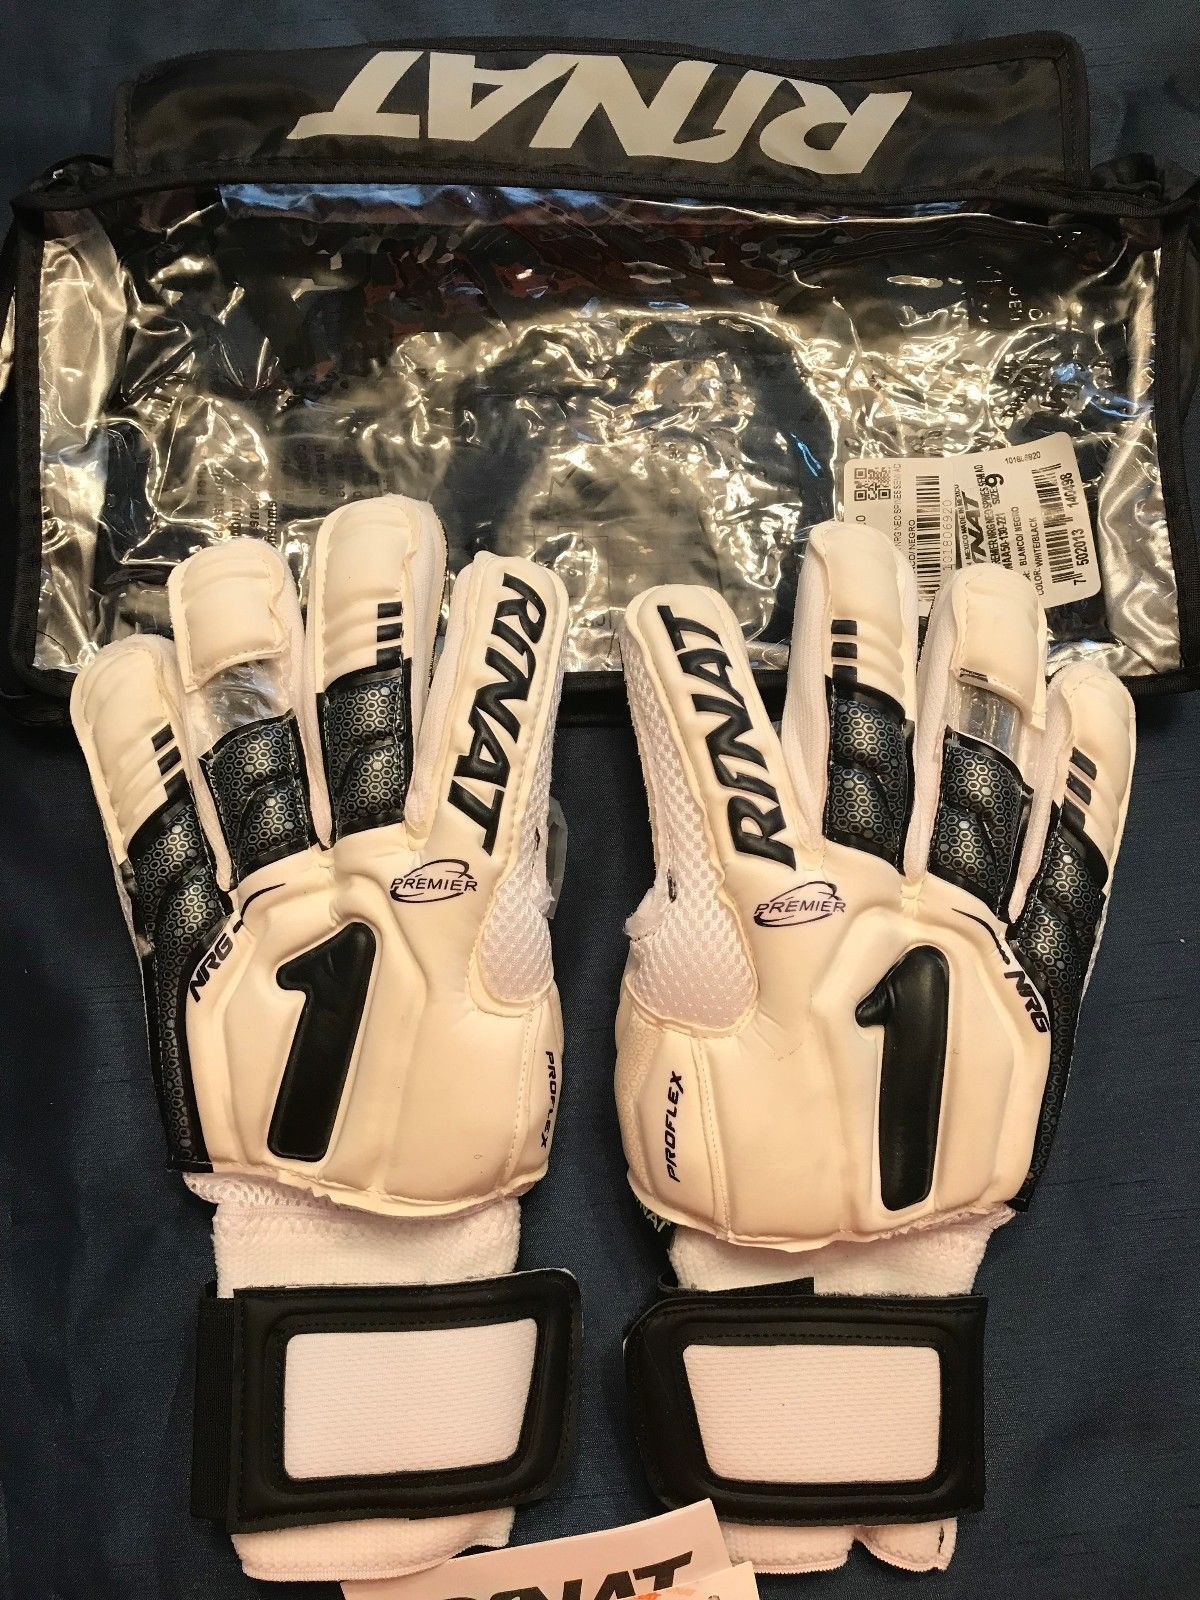 4baead0853c New Rinat Uno Premier Nrg Neo Spine Goalie and 50 similar items. 57